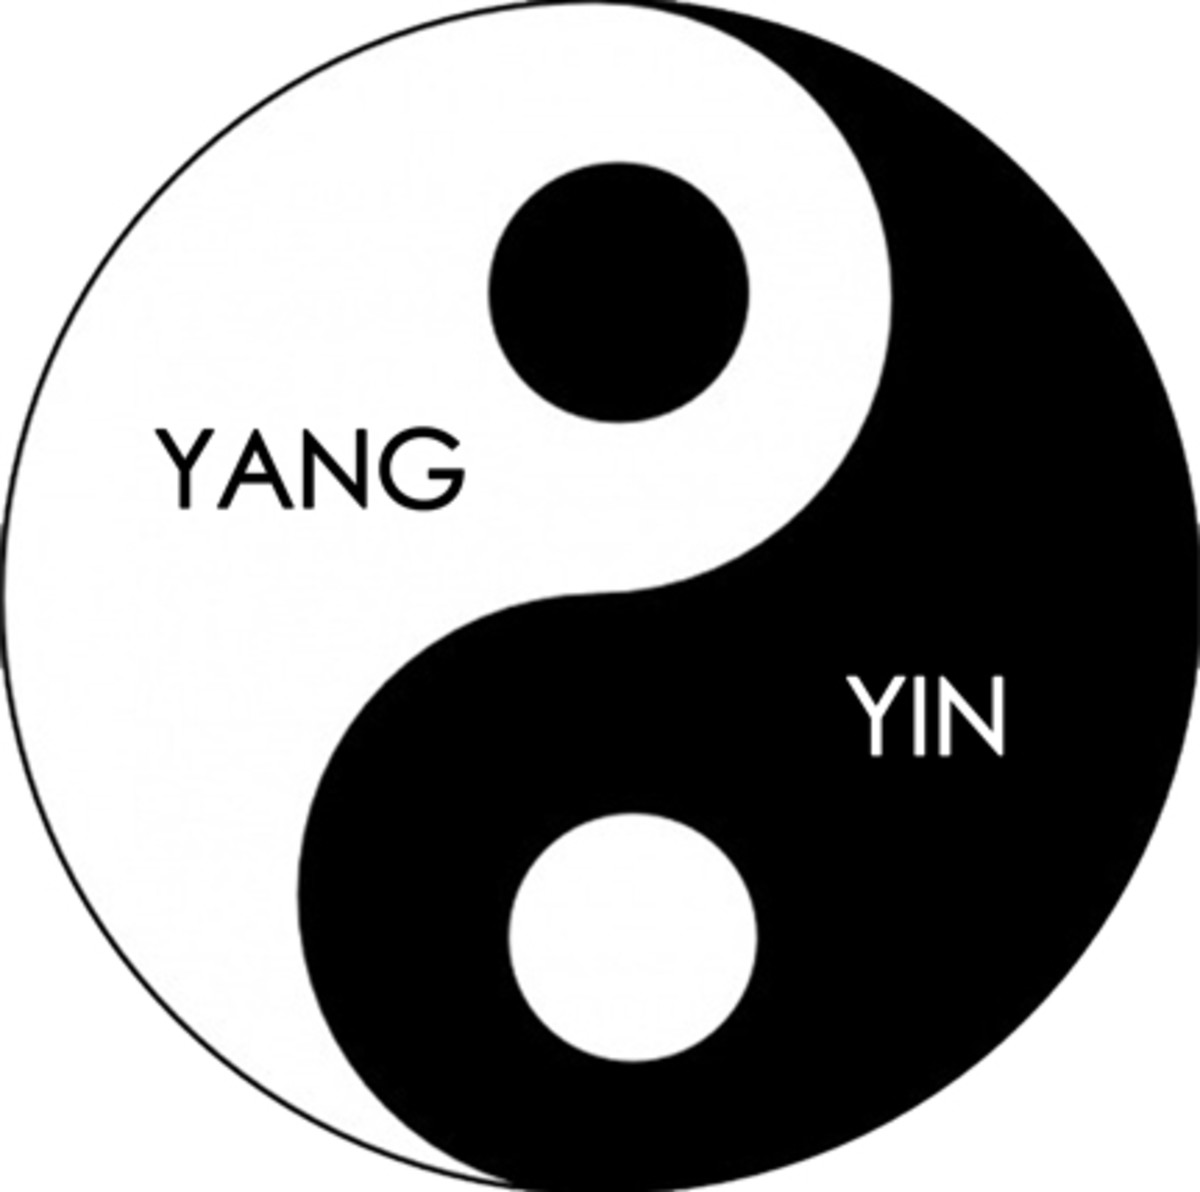 The 3rd Character in the Yin and Yang